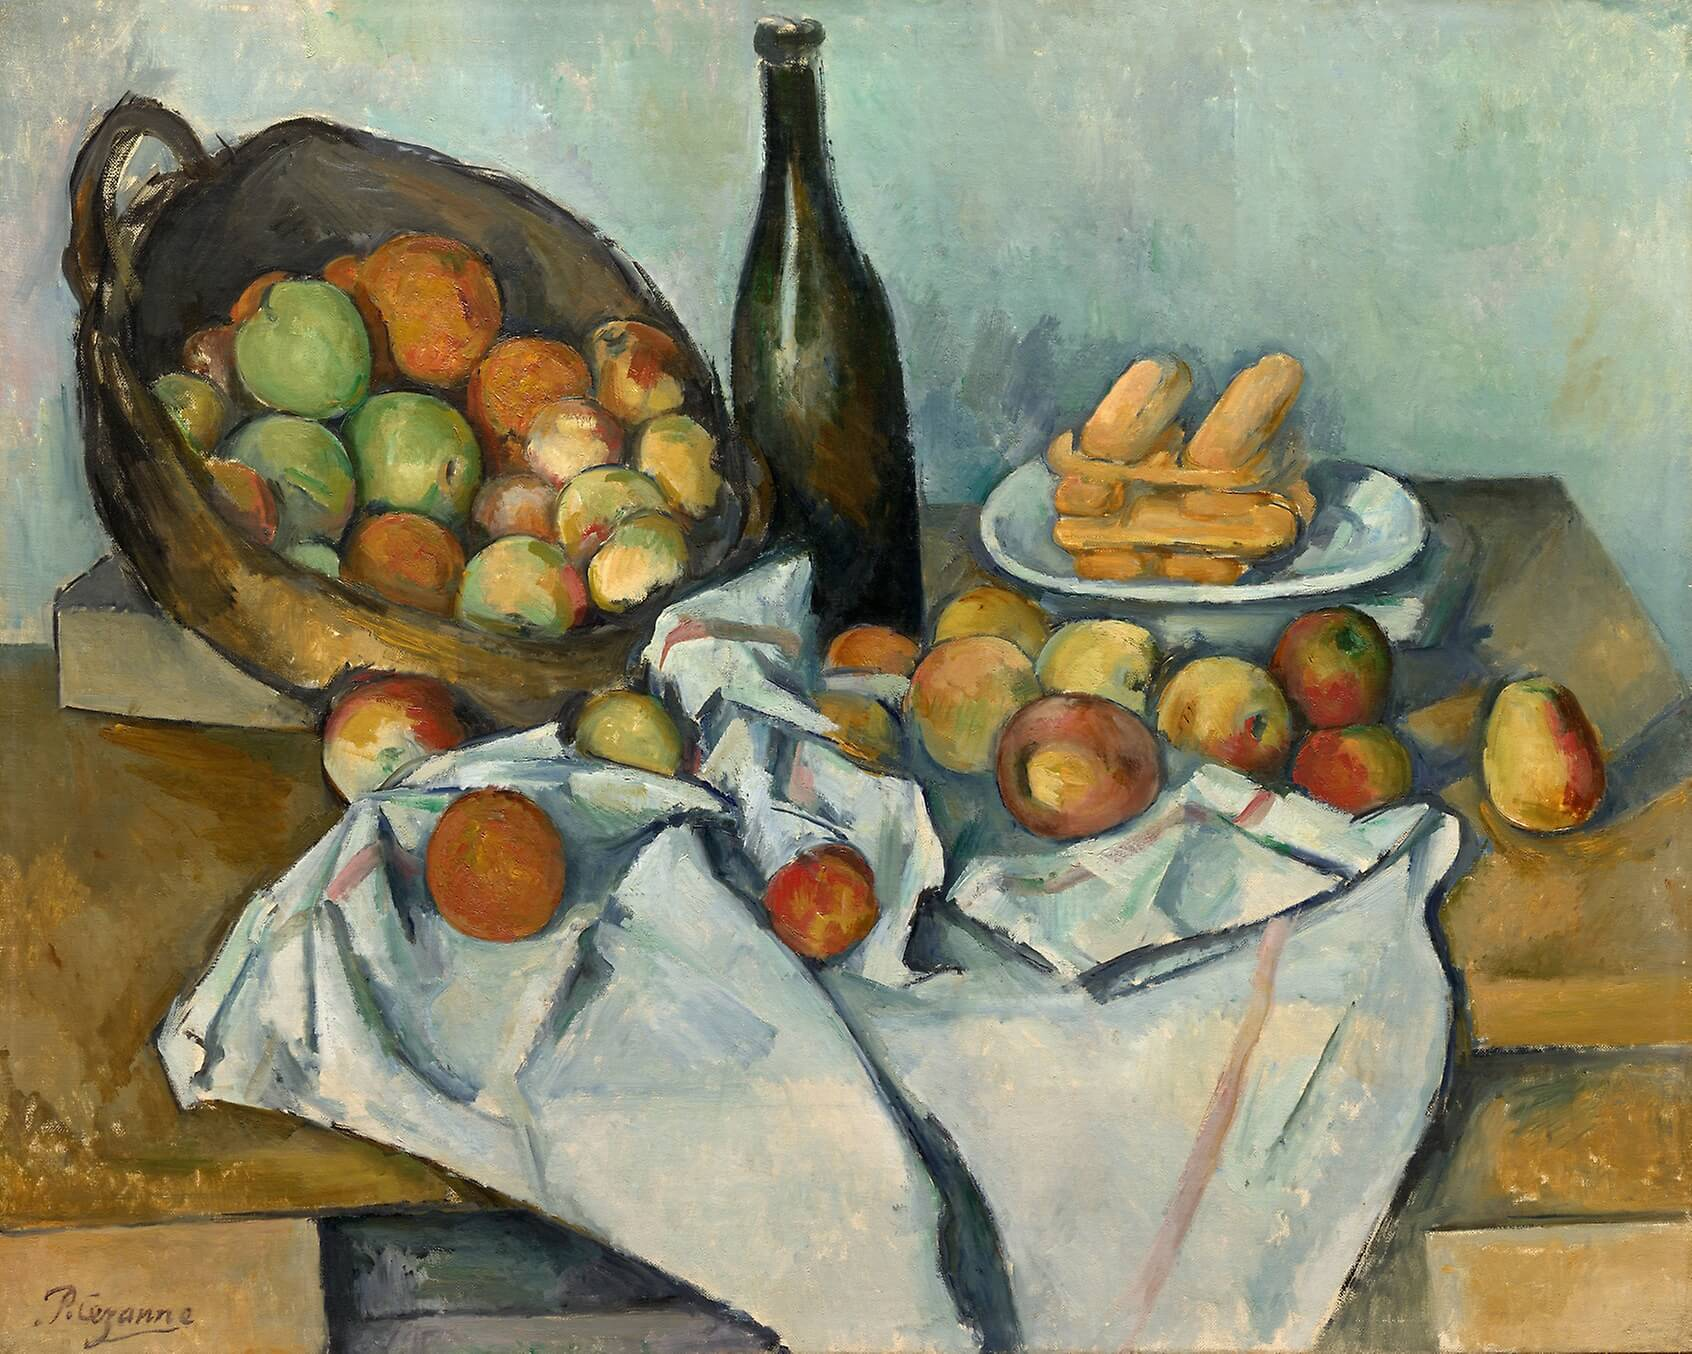 Paul Cézanne, The Basket of Apples, c. 1893 (Helen Birch Bartlett Memorial Collection, Art Institute of Chicago)